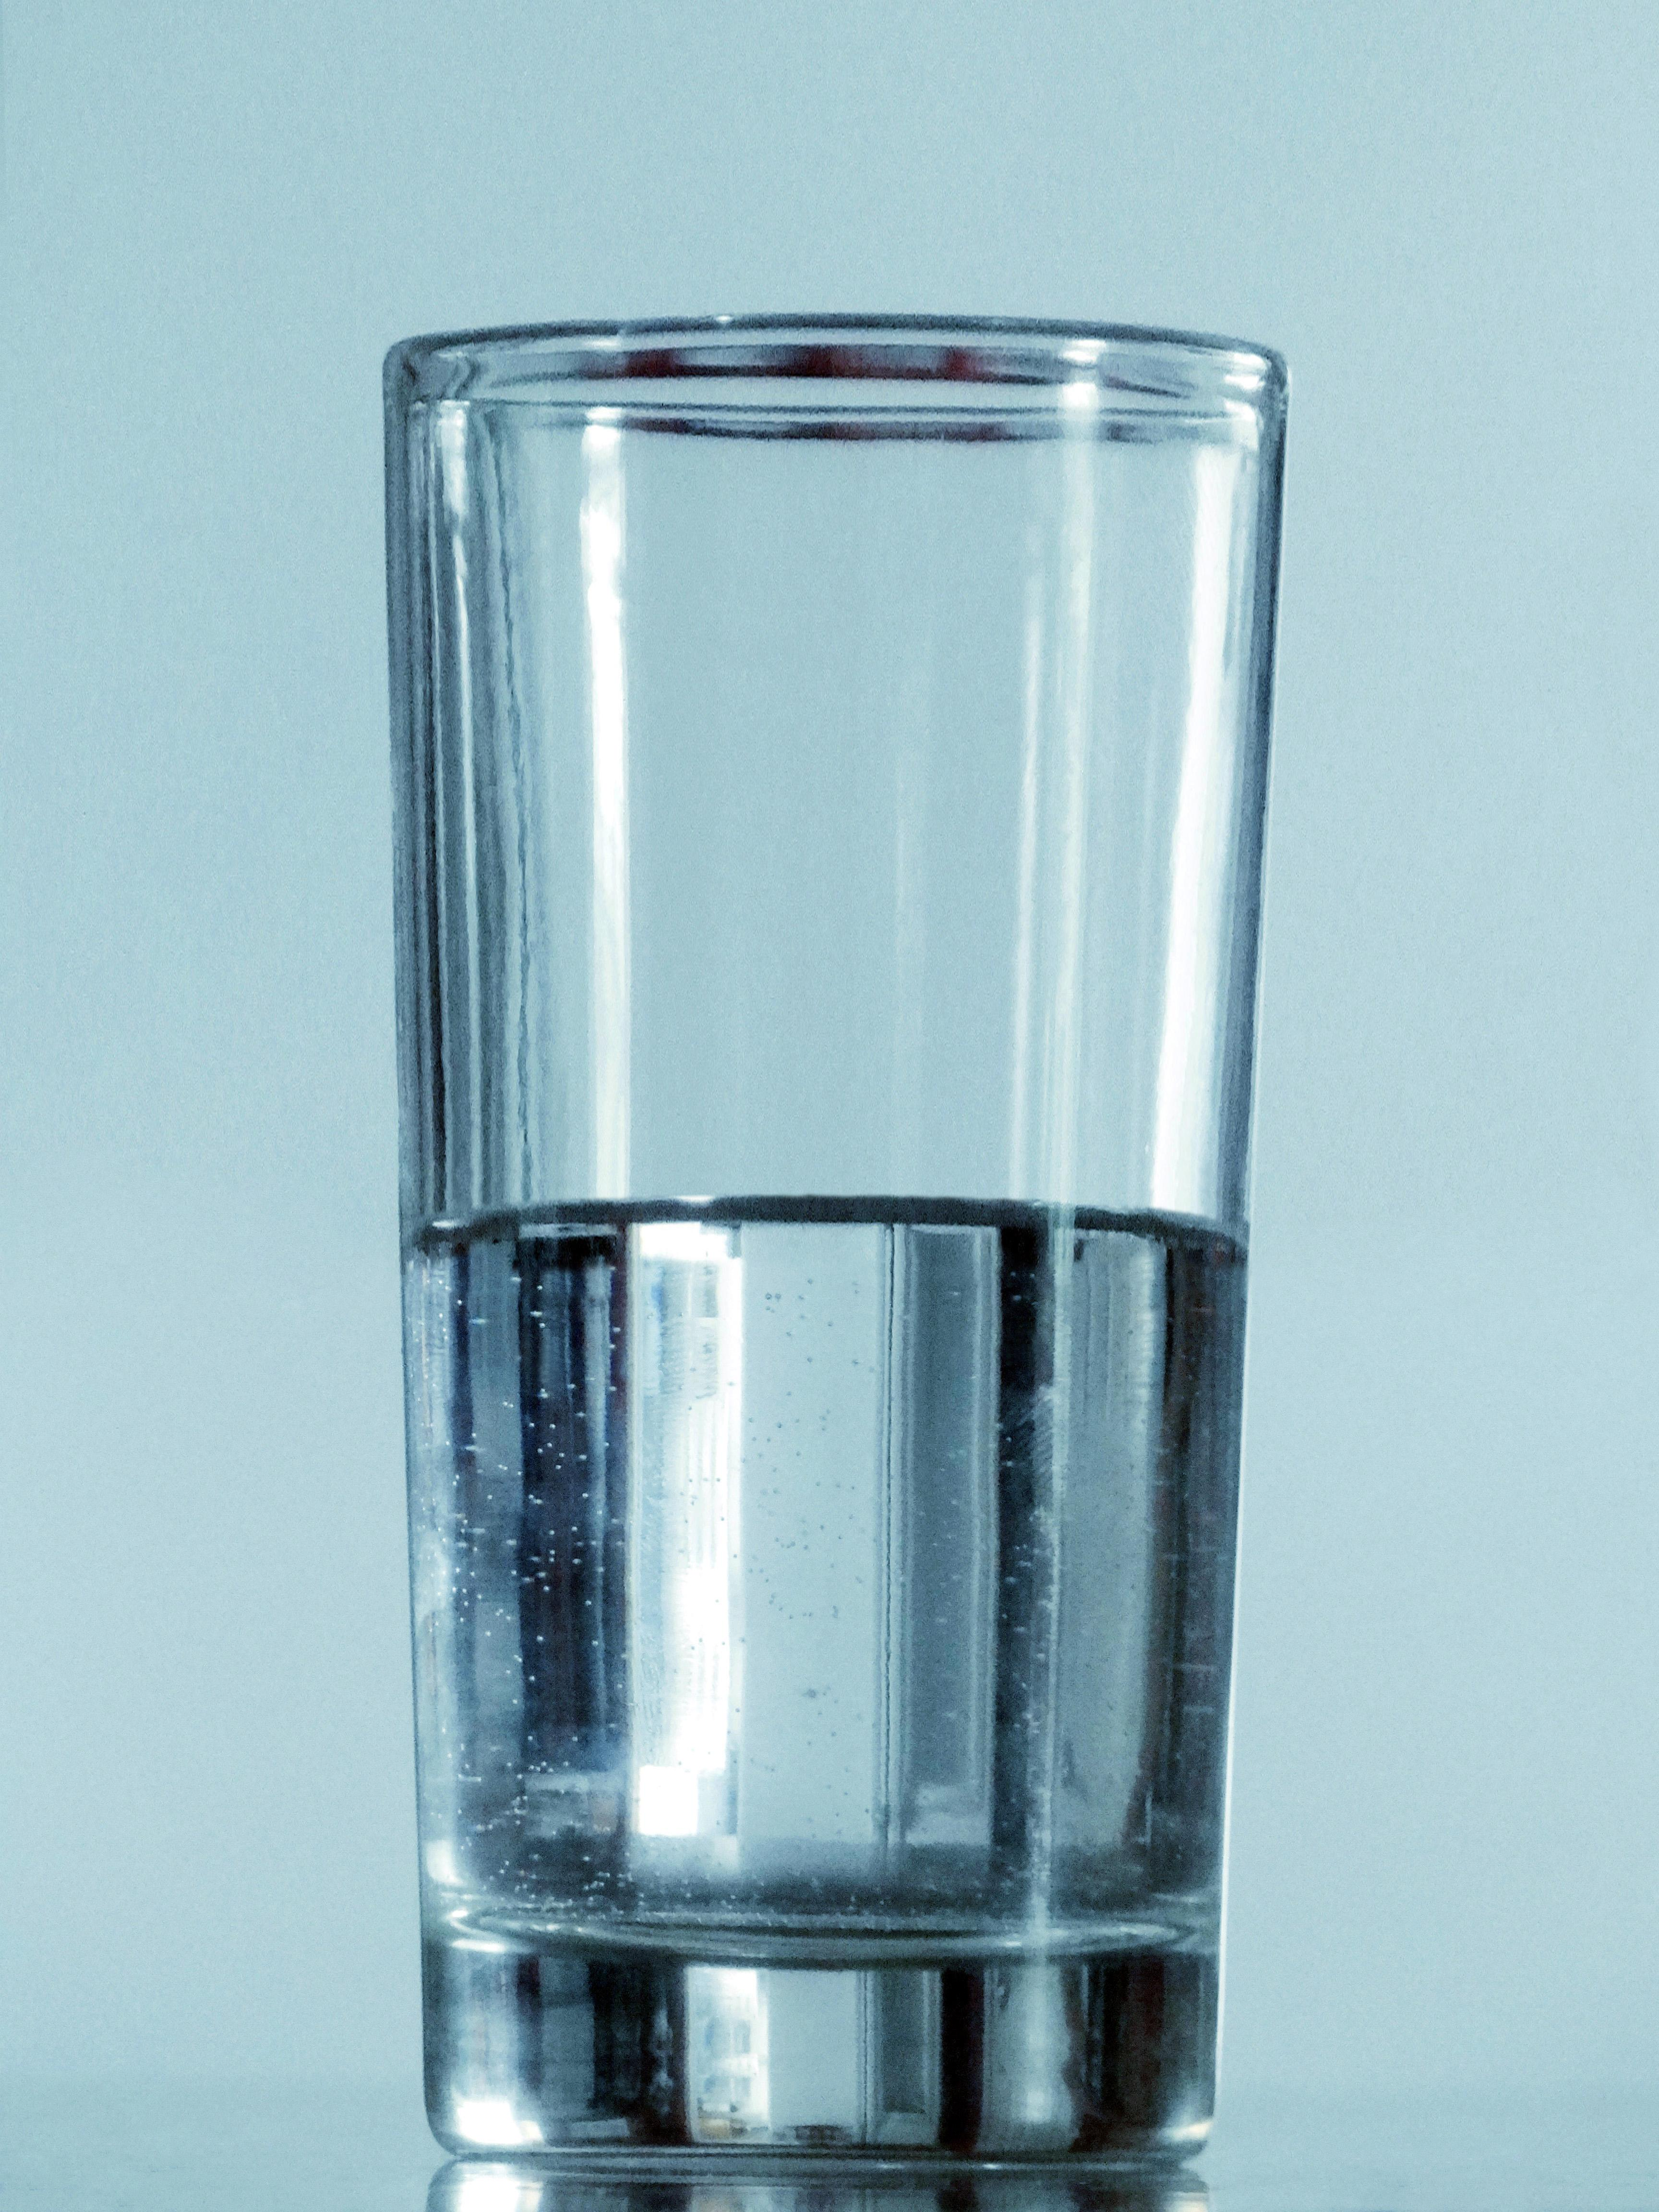 Supporting Regulators in the provision of clean drinking water